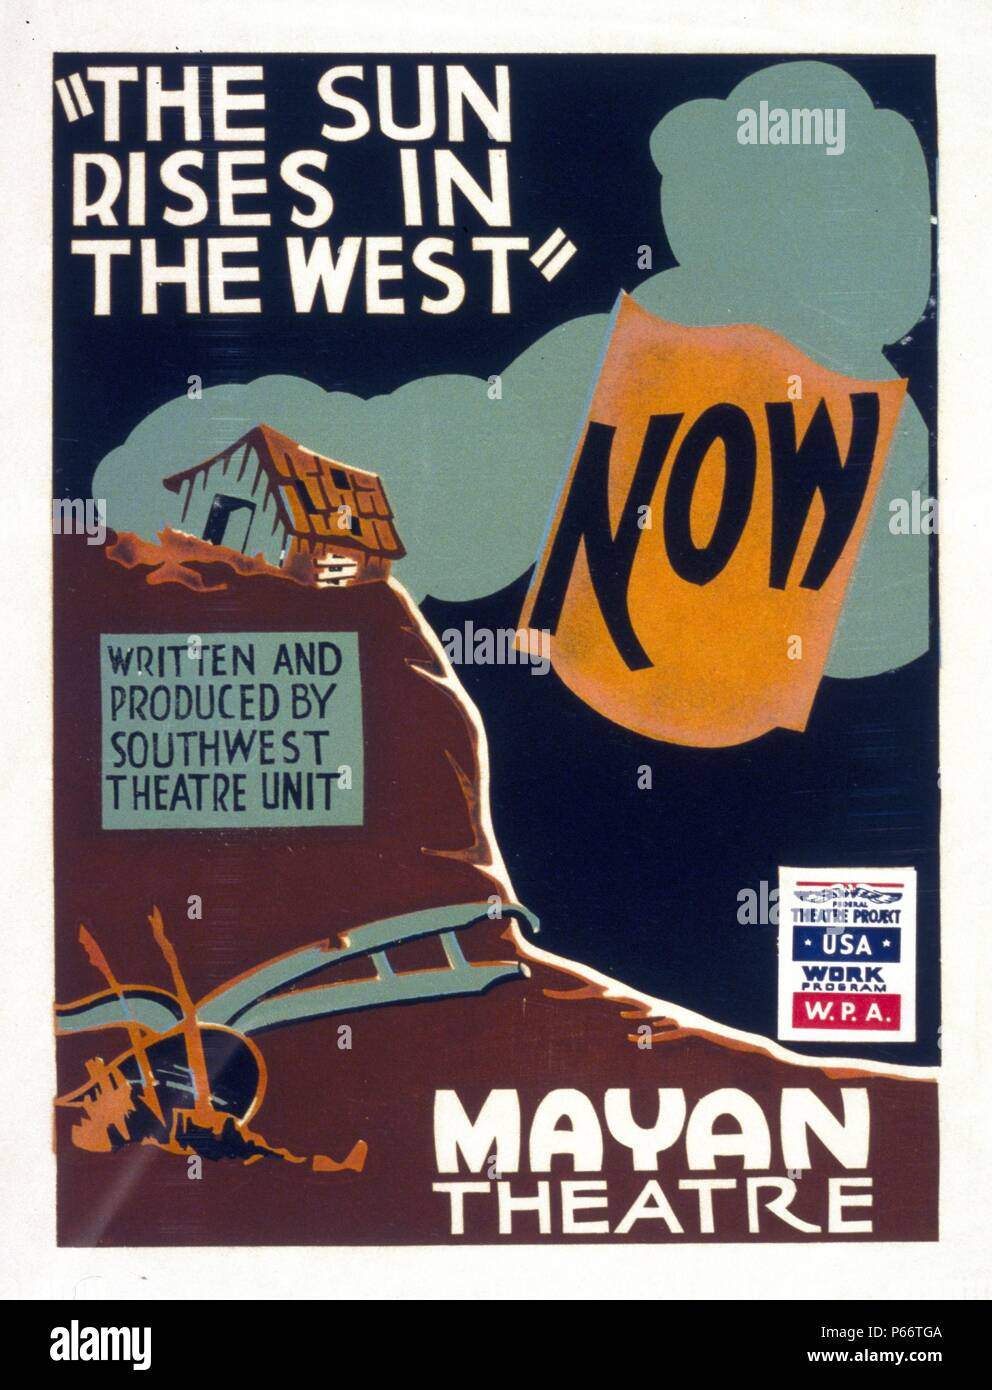 The sun rises in the west written and produced by Southwest Theatre Unit by the Federal Art Project. Poster for Federal Theatre Project presentation of 'The Sun Rises in the West' at the Mayan Theatre, showing a plough among weeds and a dilapidated farm building. Dated between 1936 and 1941 - Stock Image